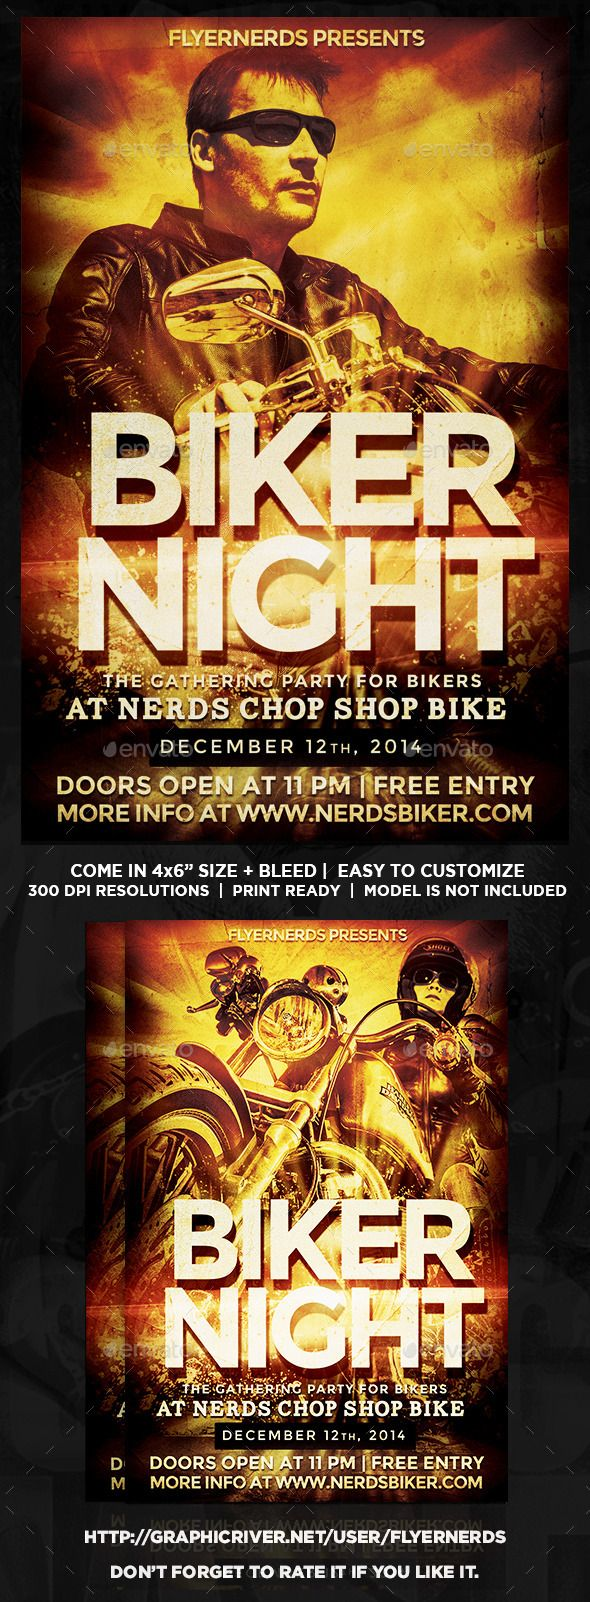 biker night gathering party flyer night flyers and flyer template biker night gathering party flyer template psd buy and